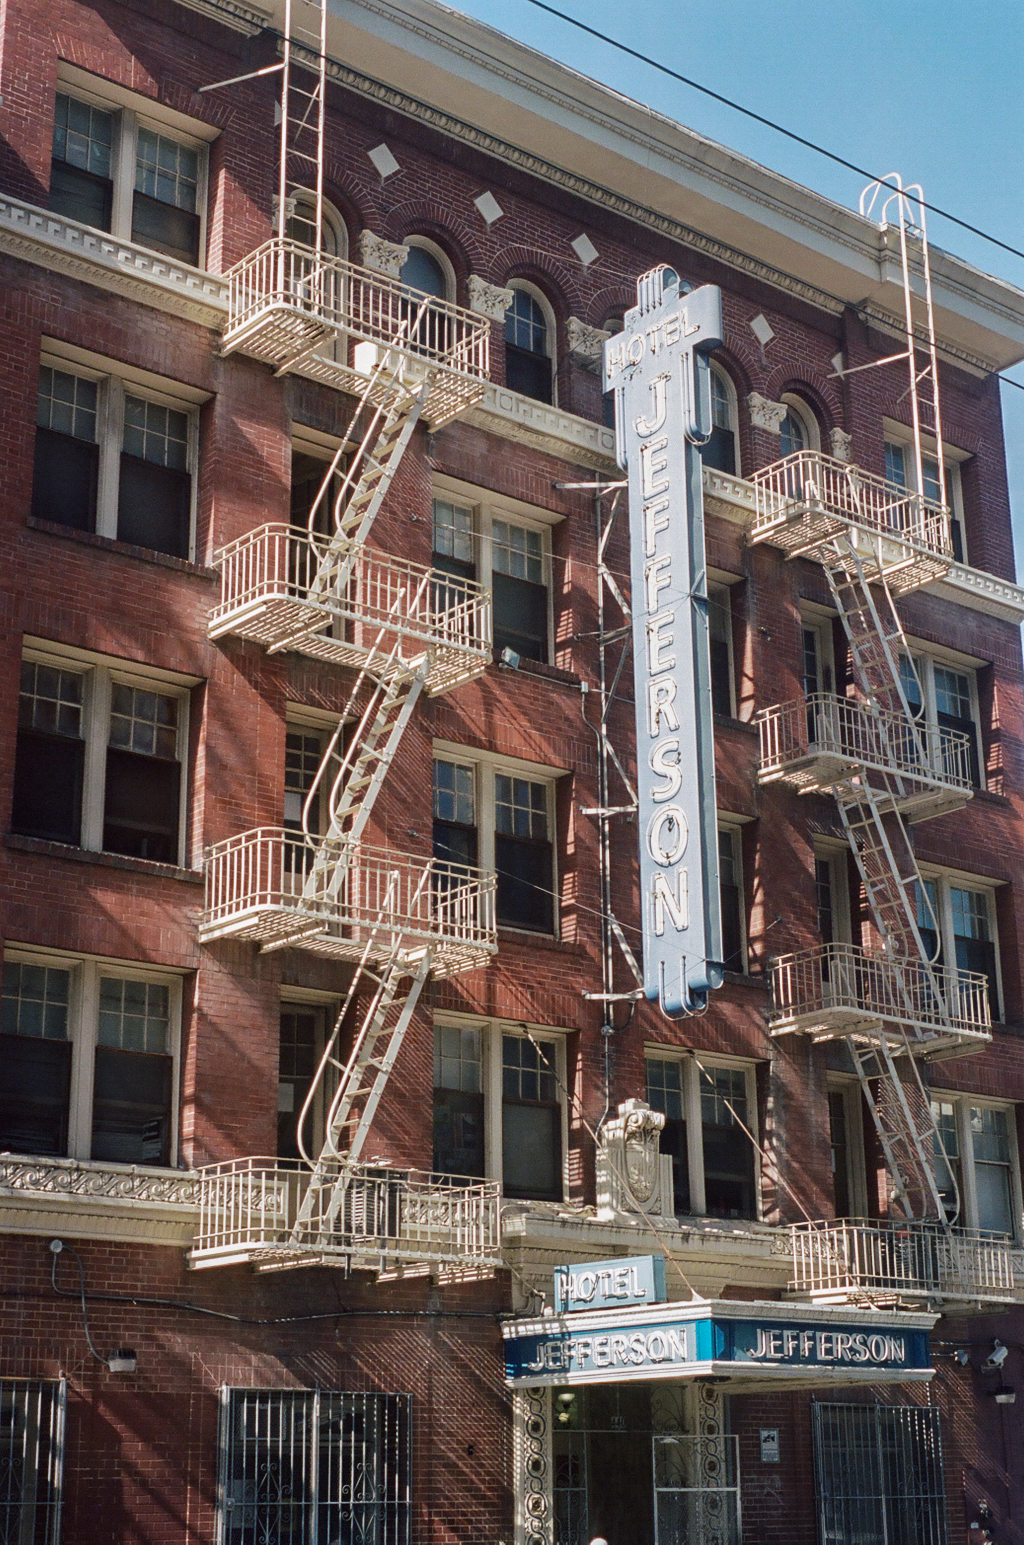 The Jefferson Hotel At 440 Eddy St Is A Residential Managed By Nonprofit Tenderloin Housing Clinic Has 108 Units Of Affordable Permanent